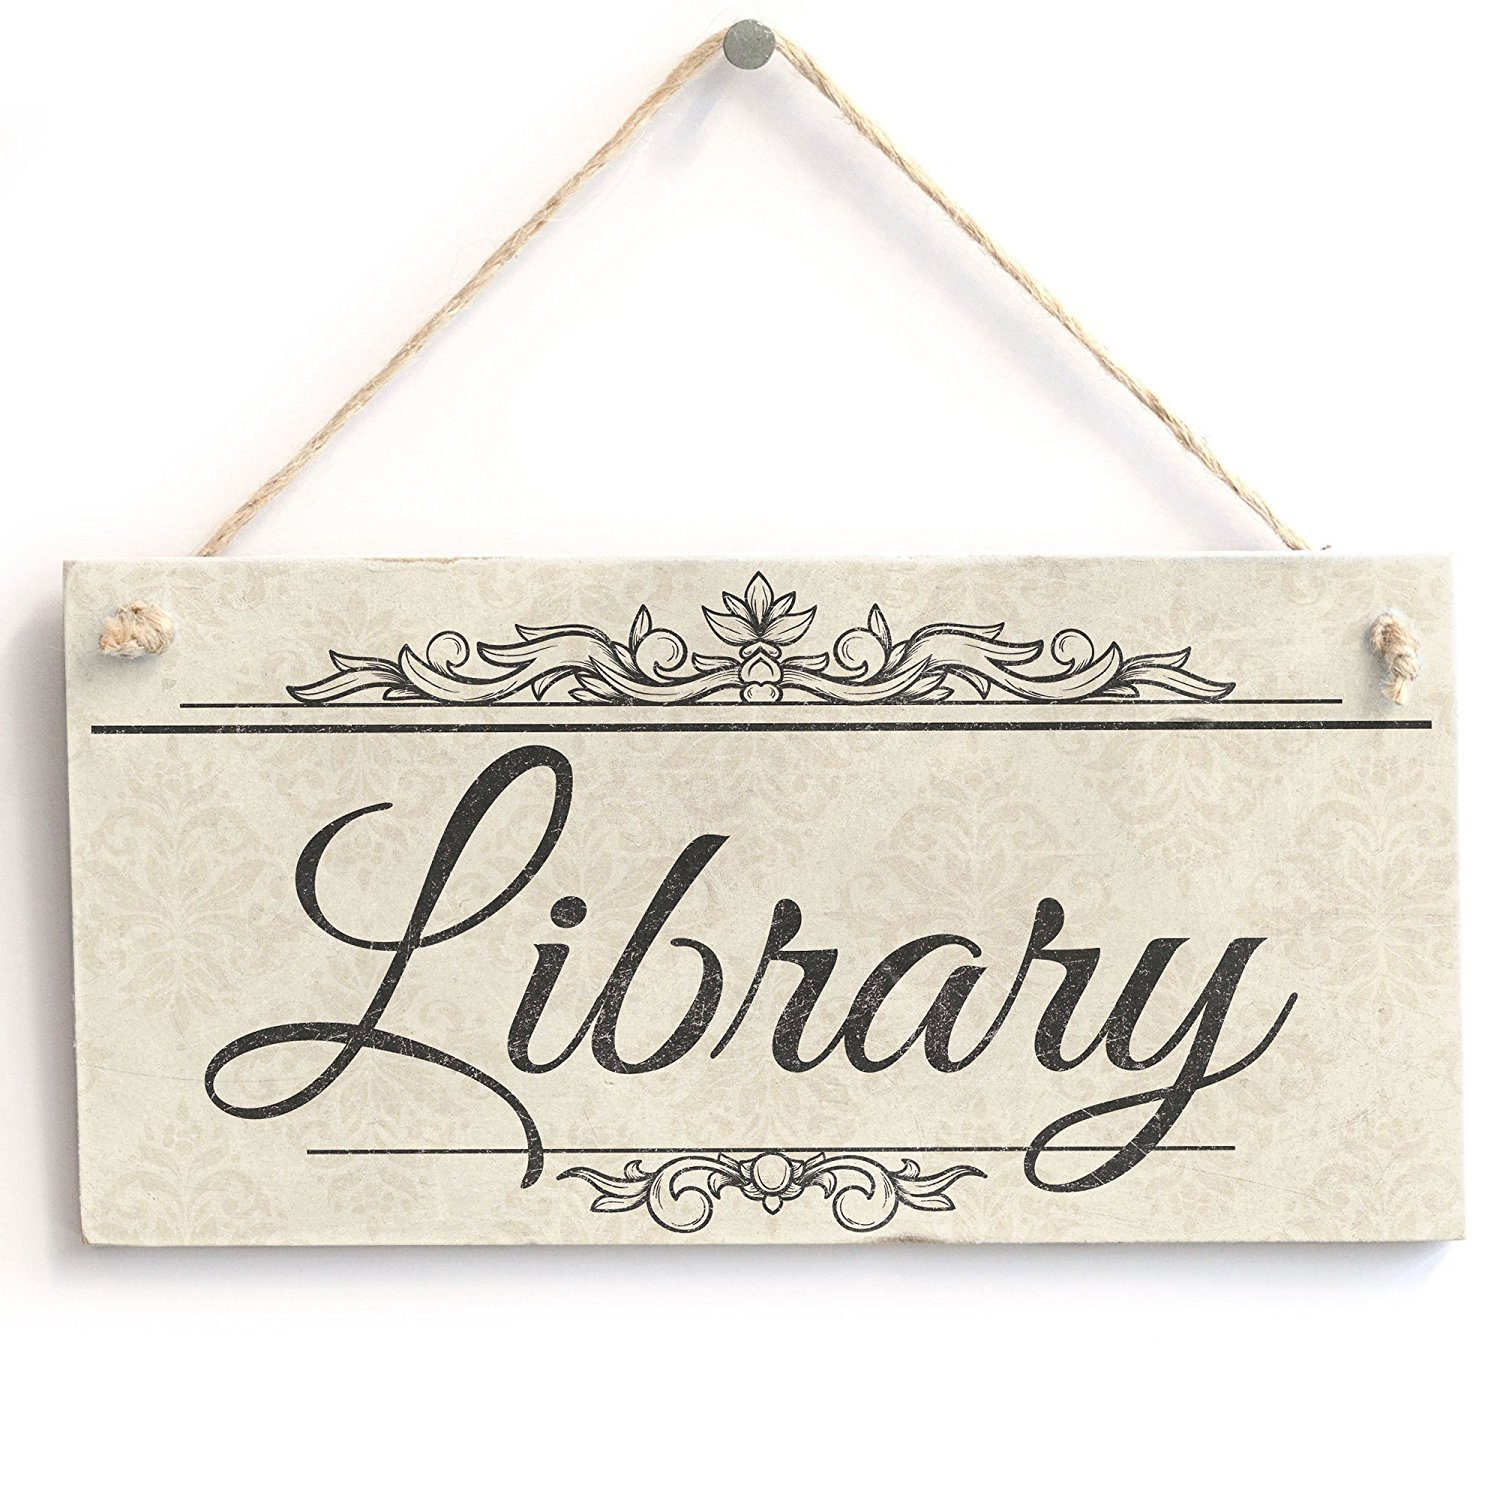 Meijiafei Library - Vintage PVC Sign /Plaque 10''x5''